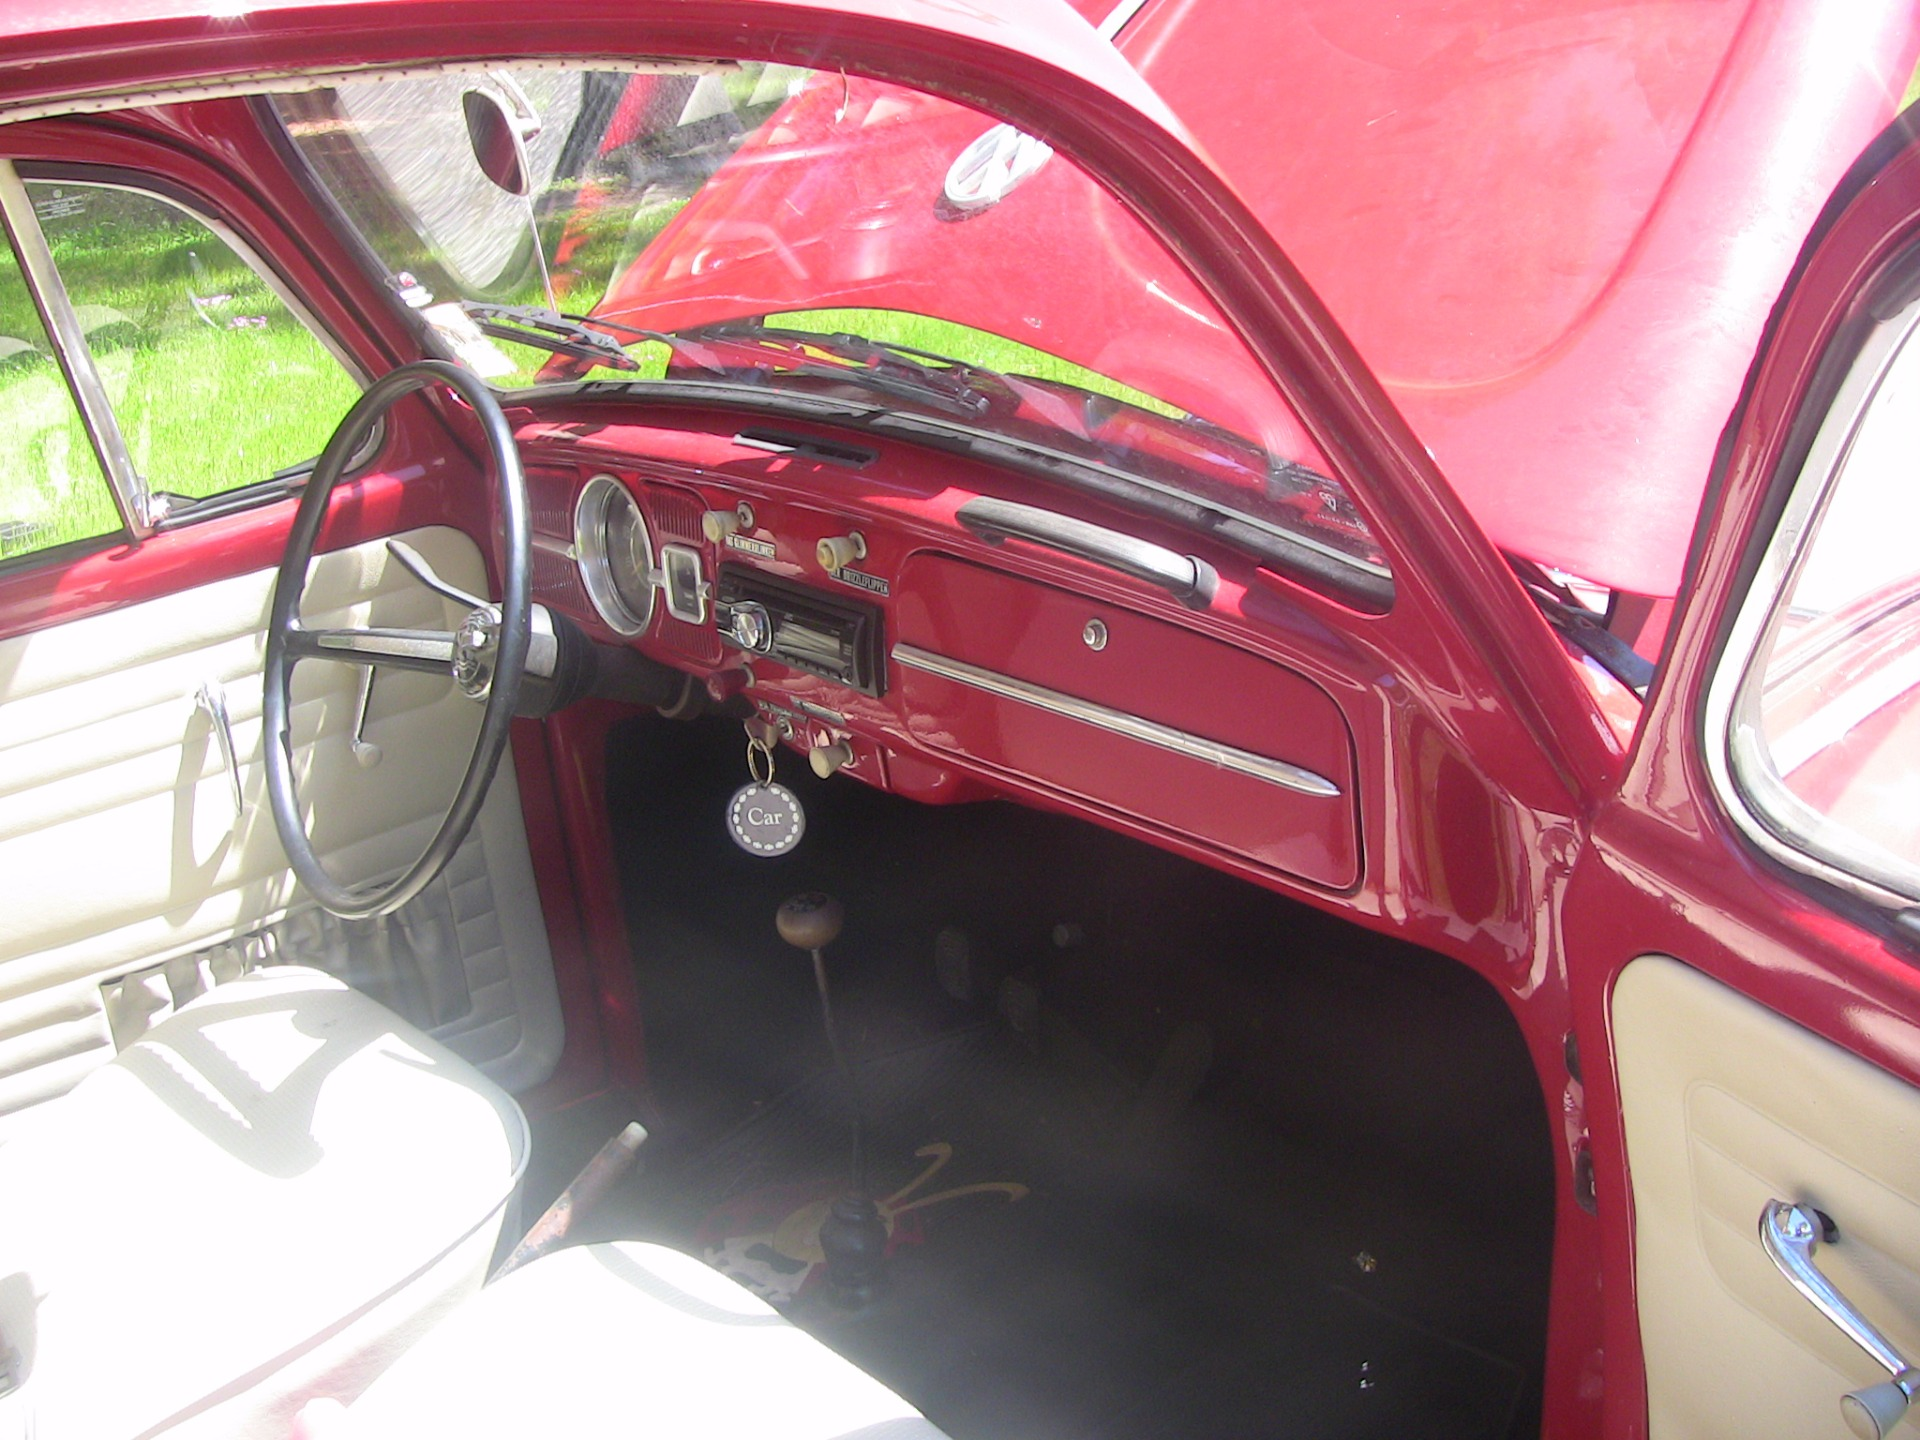 1966 Volkswagen Beetle Stock # A128 for sale near Cornelius, NC | NC Volkswagen Dealer